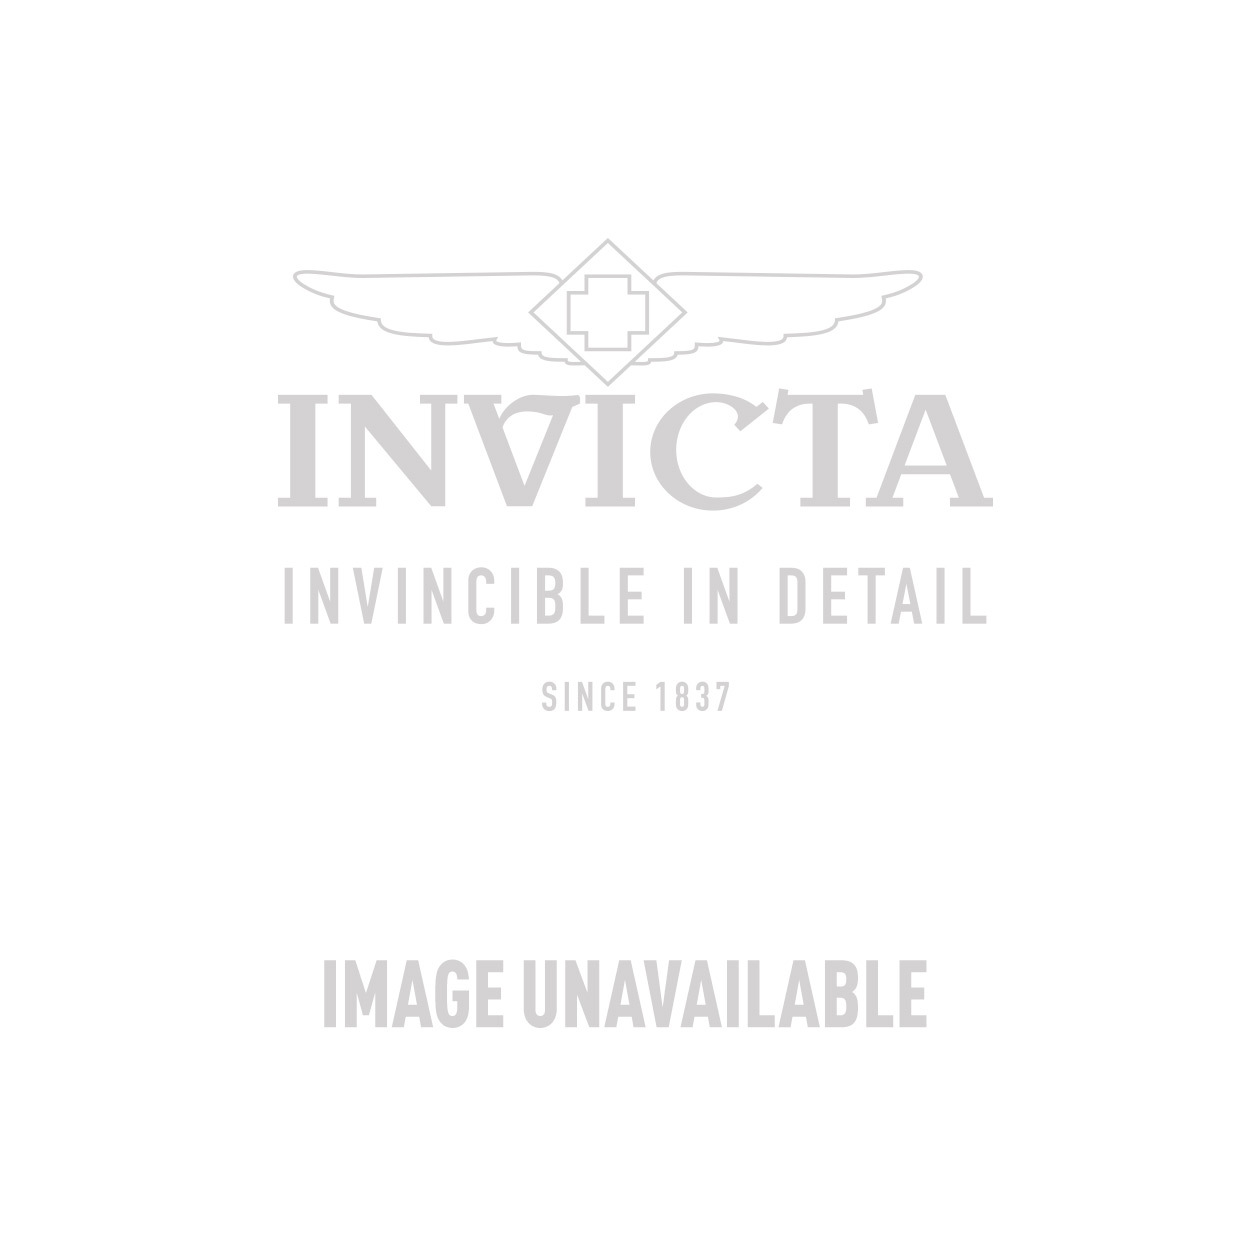 Invicta Sea Hunter Swiss Made Quartz Watch - Rose Gold, Stainless Steel case Stainless Steel band - Model 90252